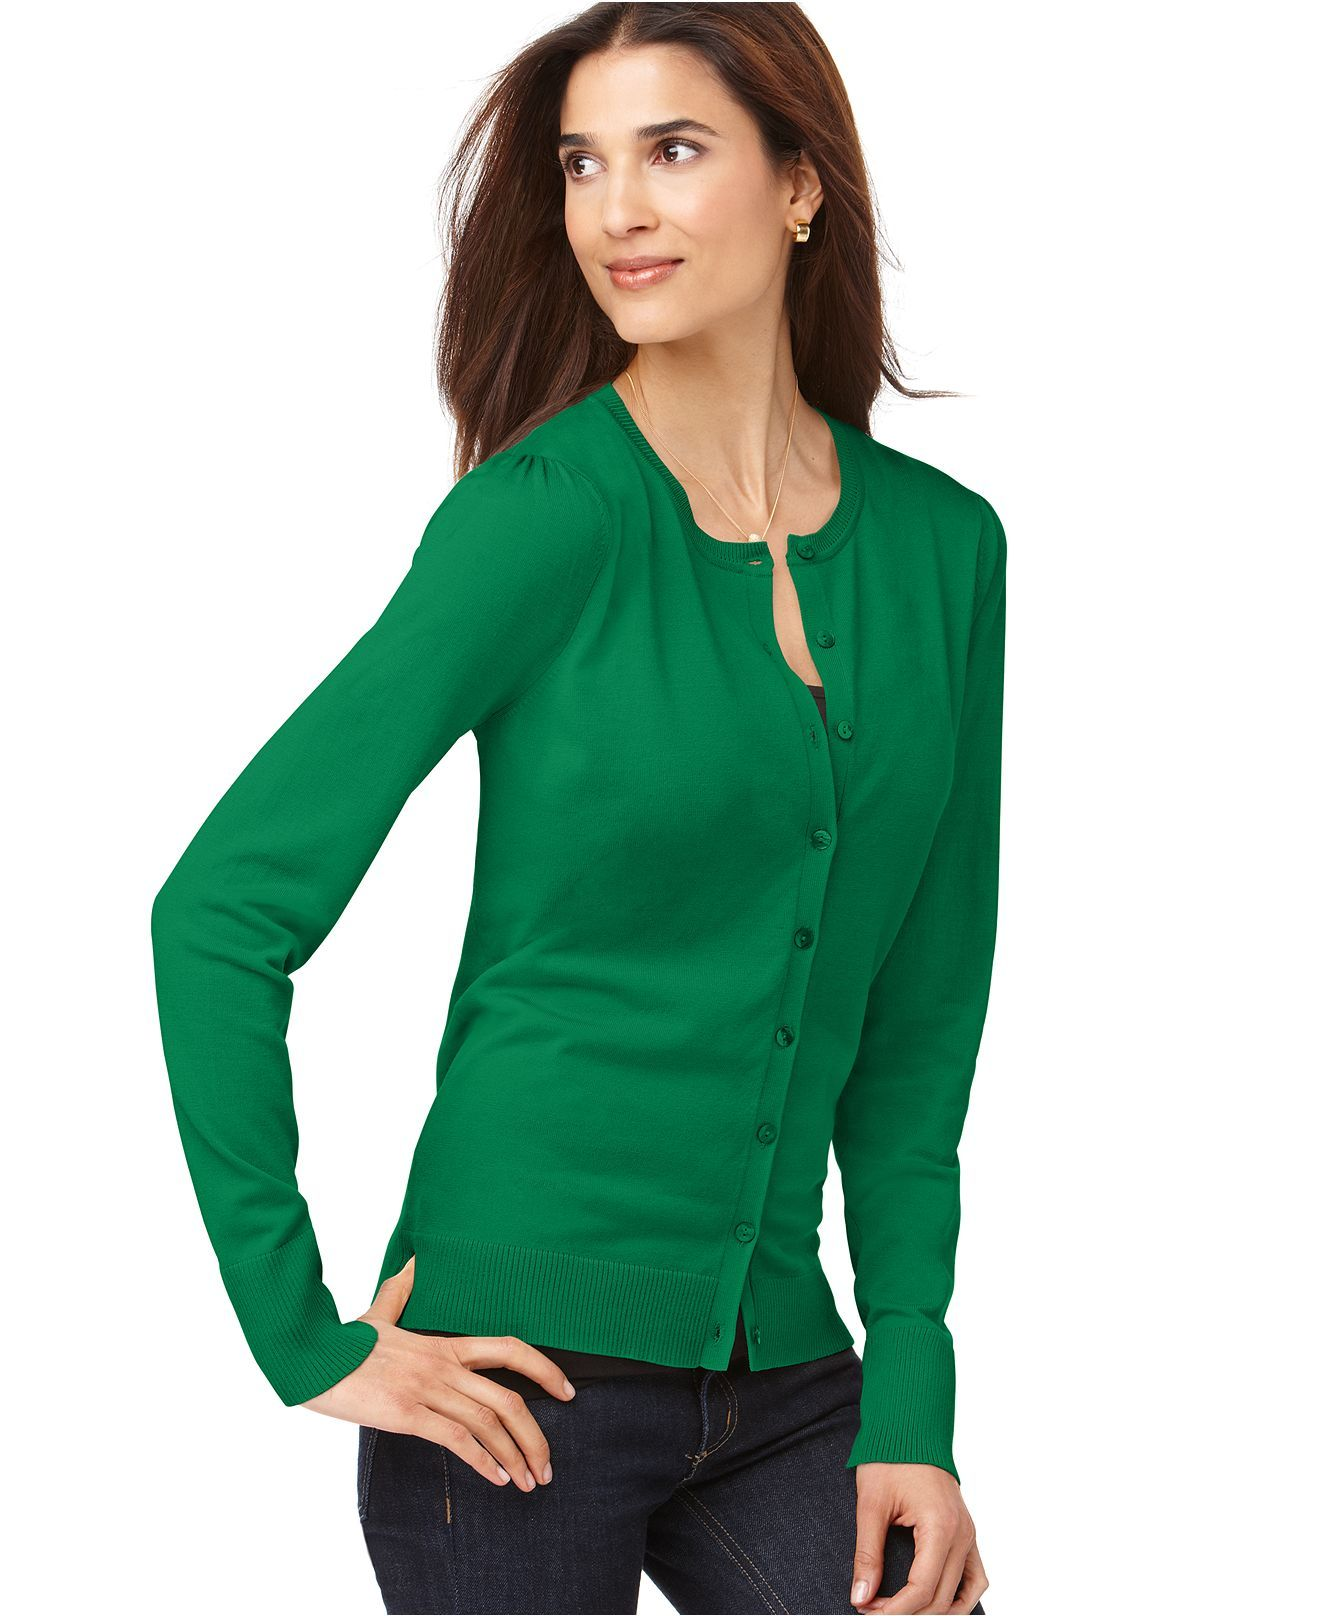 Green Sweaters for Women | Dress images